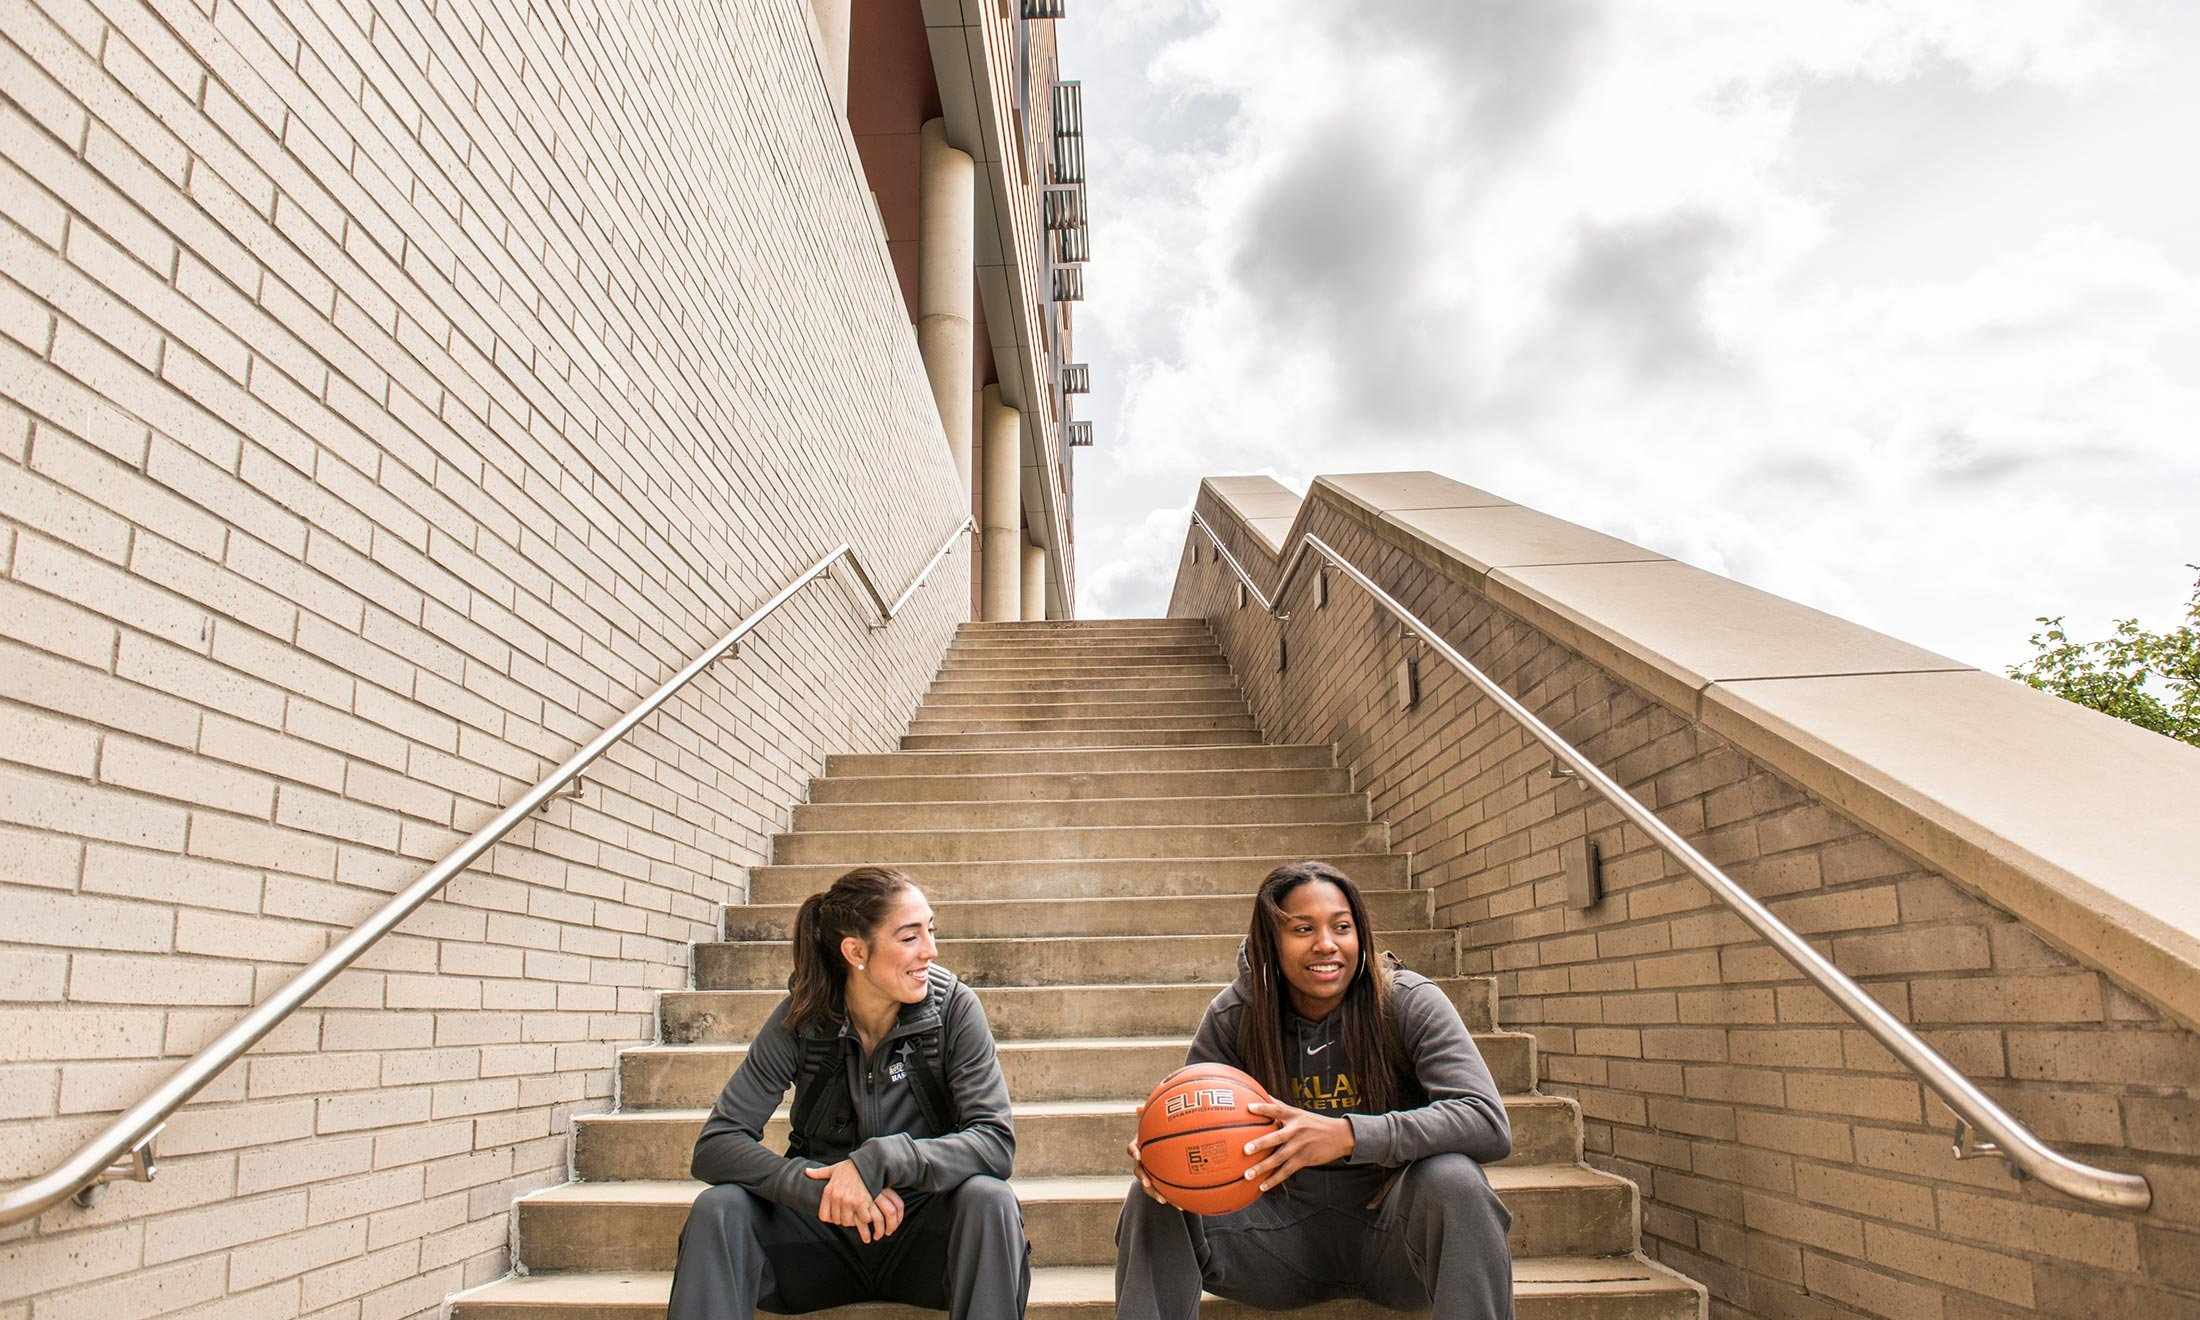 Oakland University women's basketball player Taylor Gleason sits on the steps of the Human Health building and talks with a friend holding a basketball